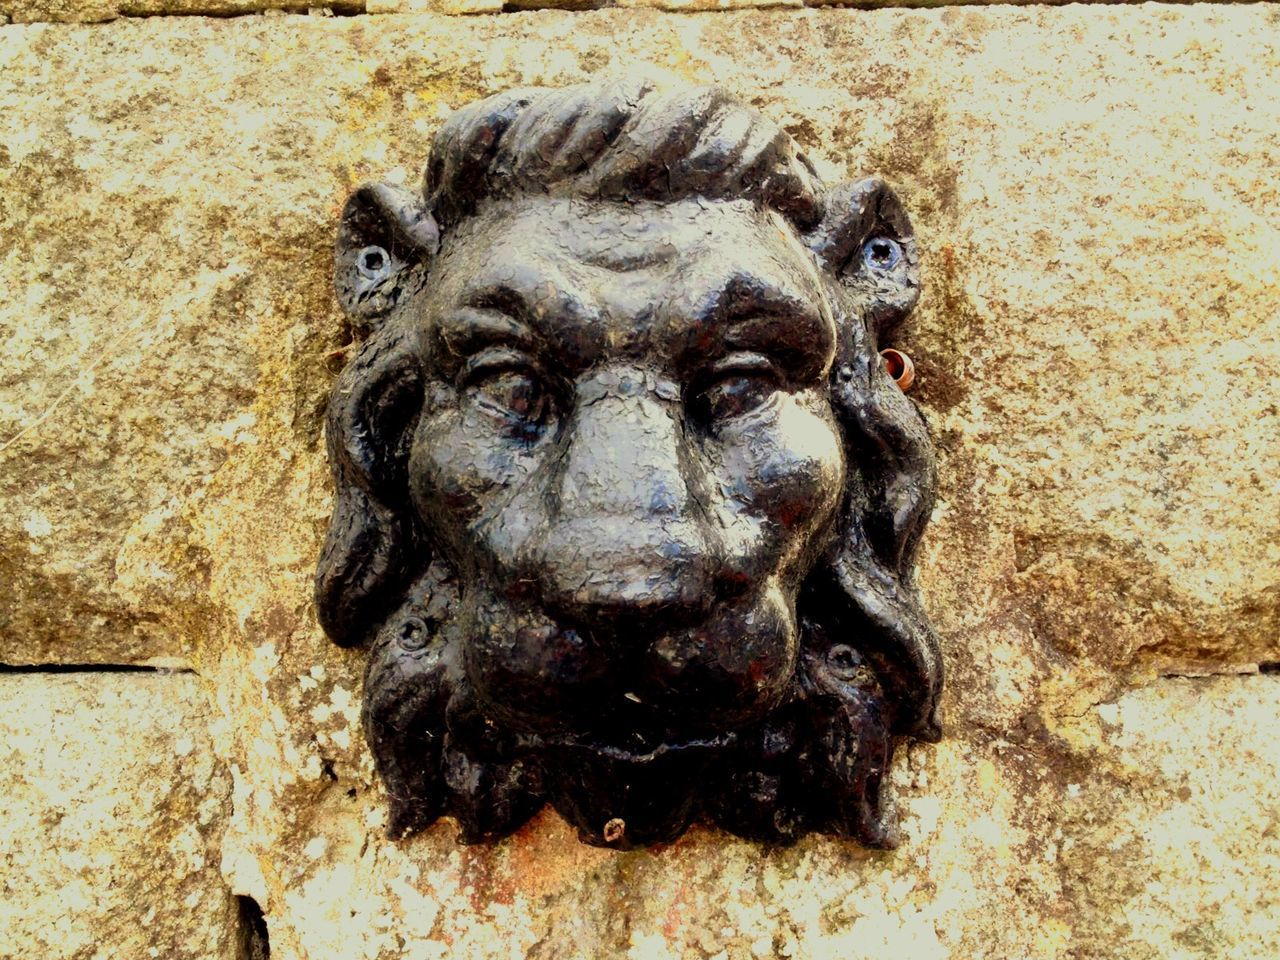 art and craft, close-up, no people, animal head, textured, day, lion - feline, outdoors, animal themes